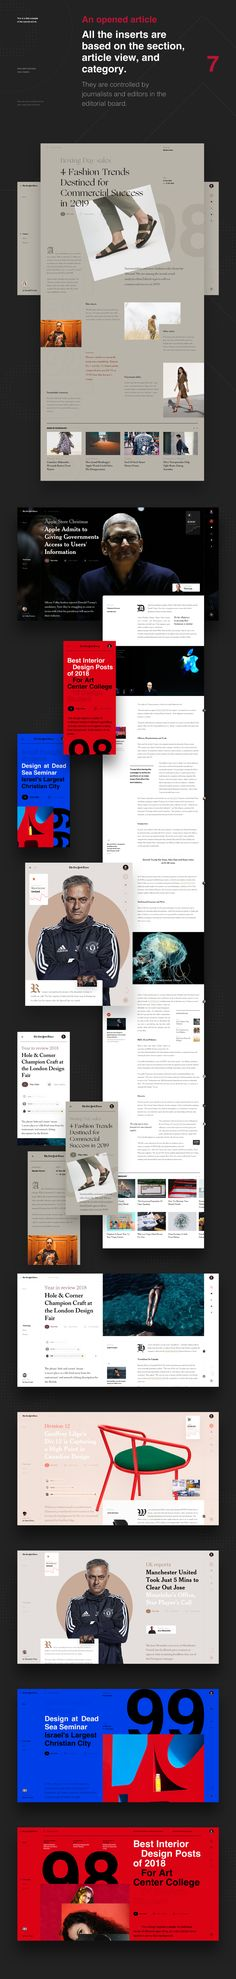 NYT Redesign Concept on Behance Portal, Adobe Xd, Best Motivational Quotes, Online Portfolio, How To Stay Motivated, New York Times, Web Design, Behance, Concept